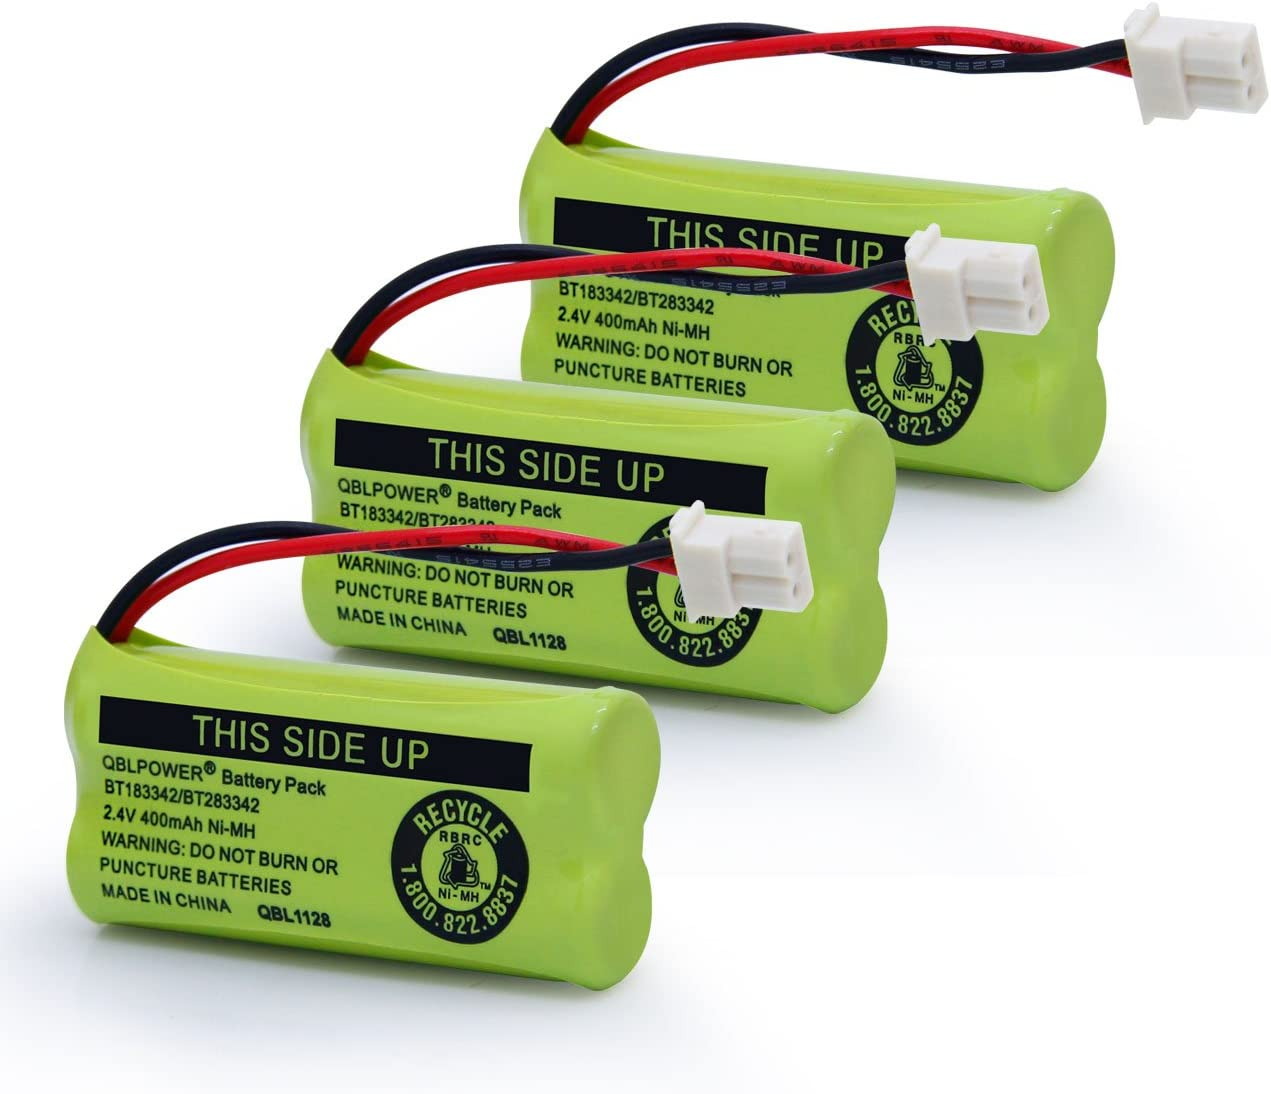 QBLPOWER BT183342/BT283342 2.4V 400mAh Ni-mh BT-166342 BT-266342 BT-162342 BT-262342 Battery Compatible with VTech CS6114 CS6419 CS6719 AT&T EL52300 CL80111 Cordless Phone(Pack of 3)